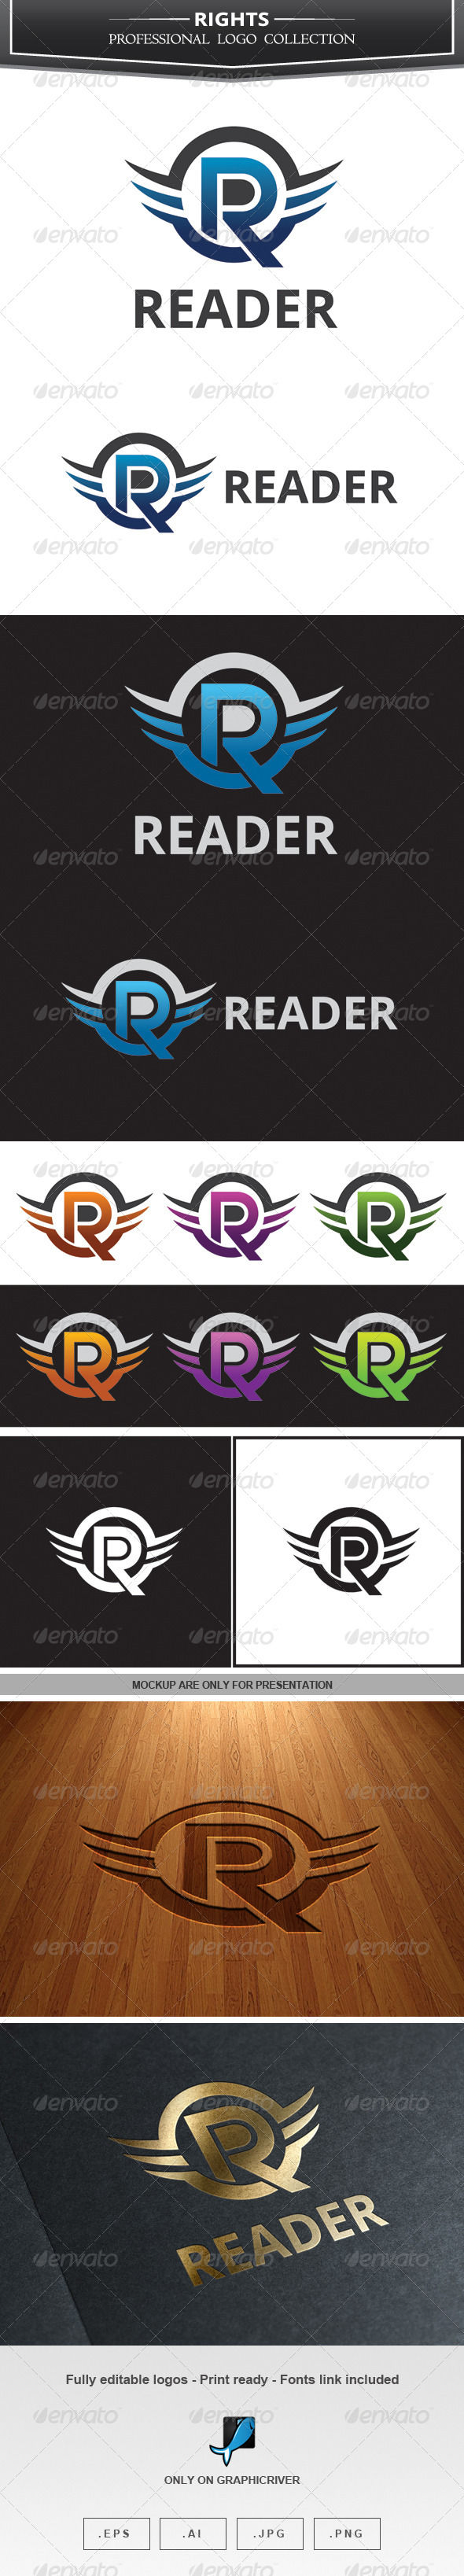 GraphicRiver Reader Logo 7246271